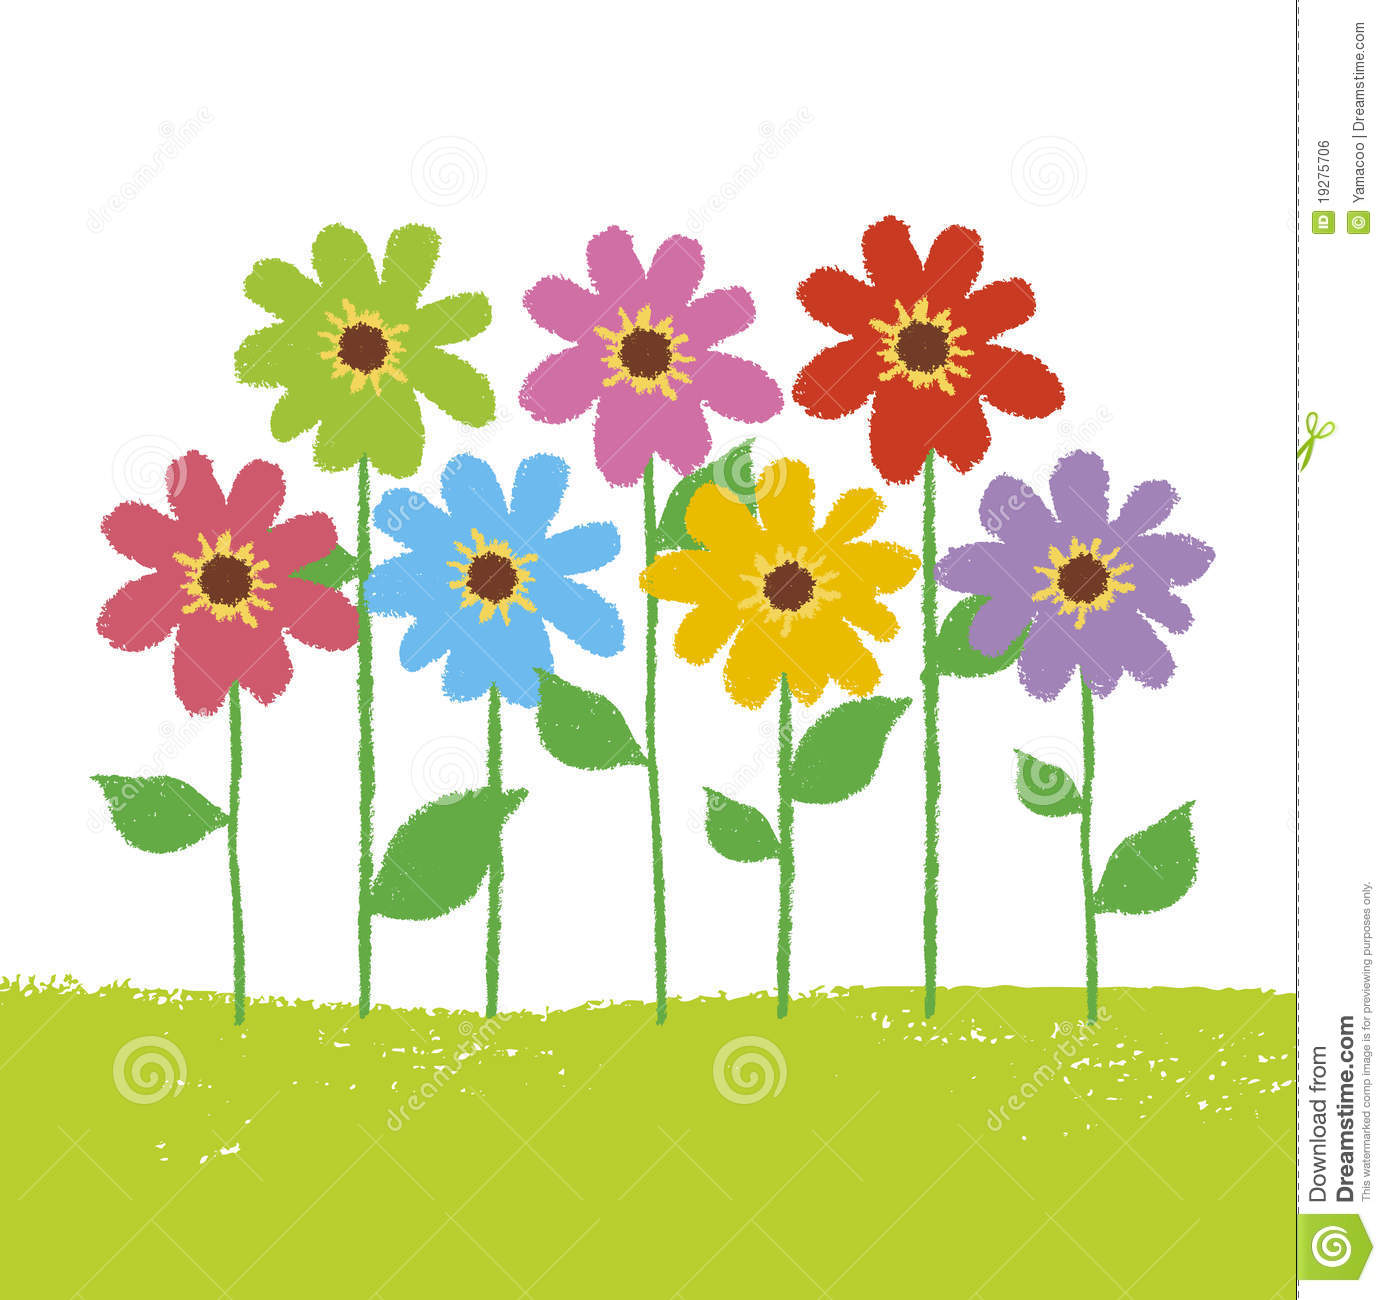 Flower in the garden clipart. Station